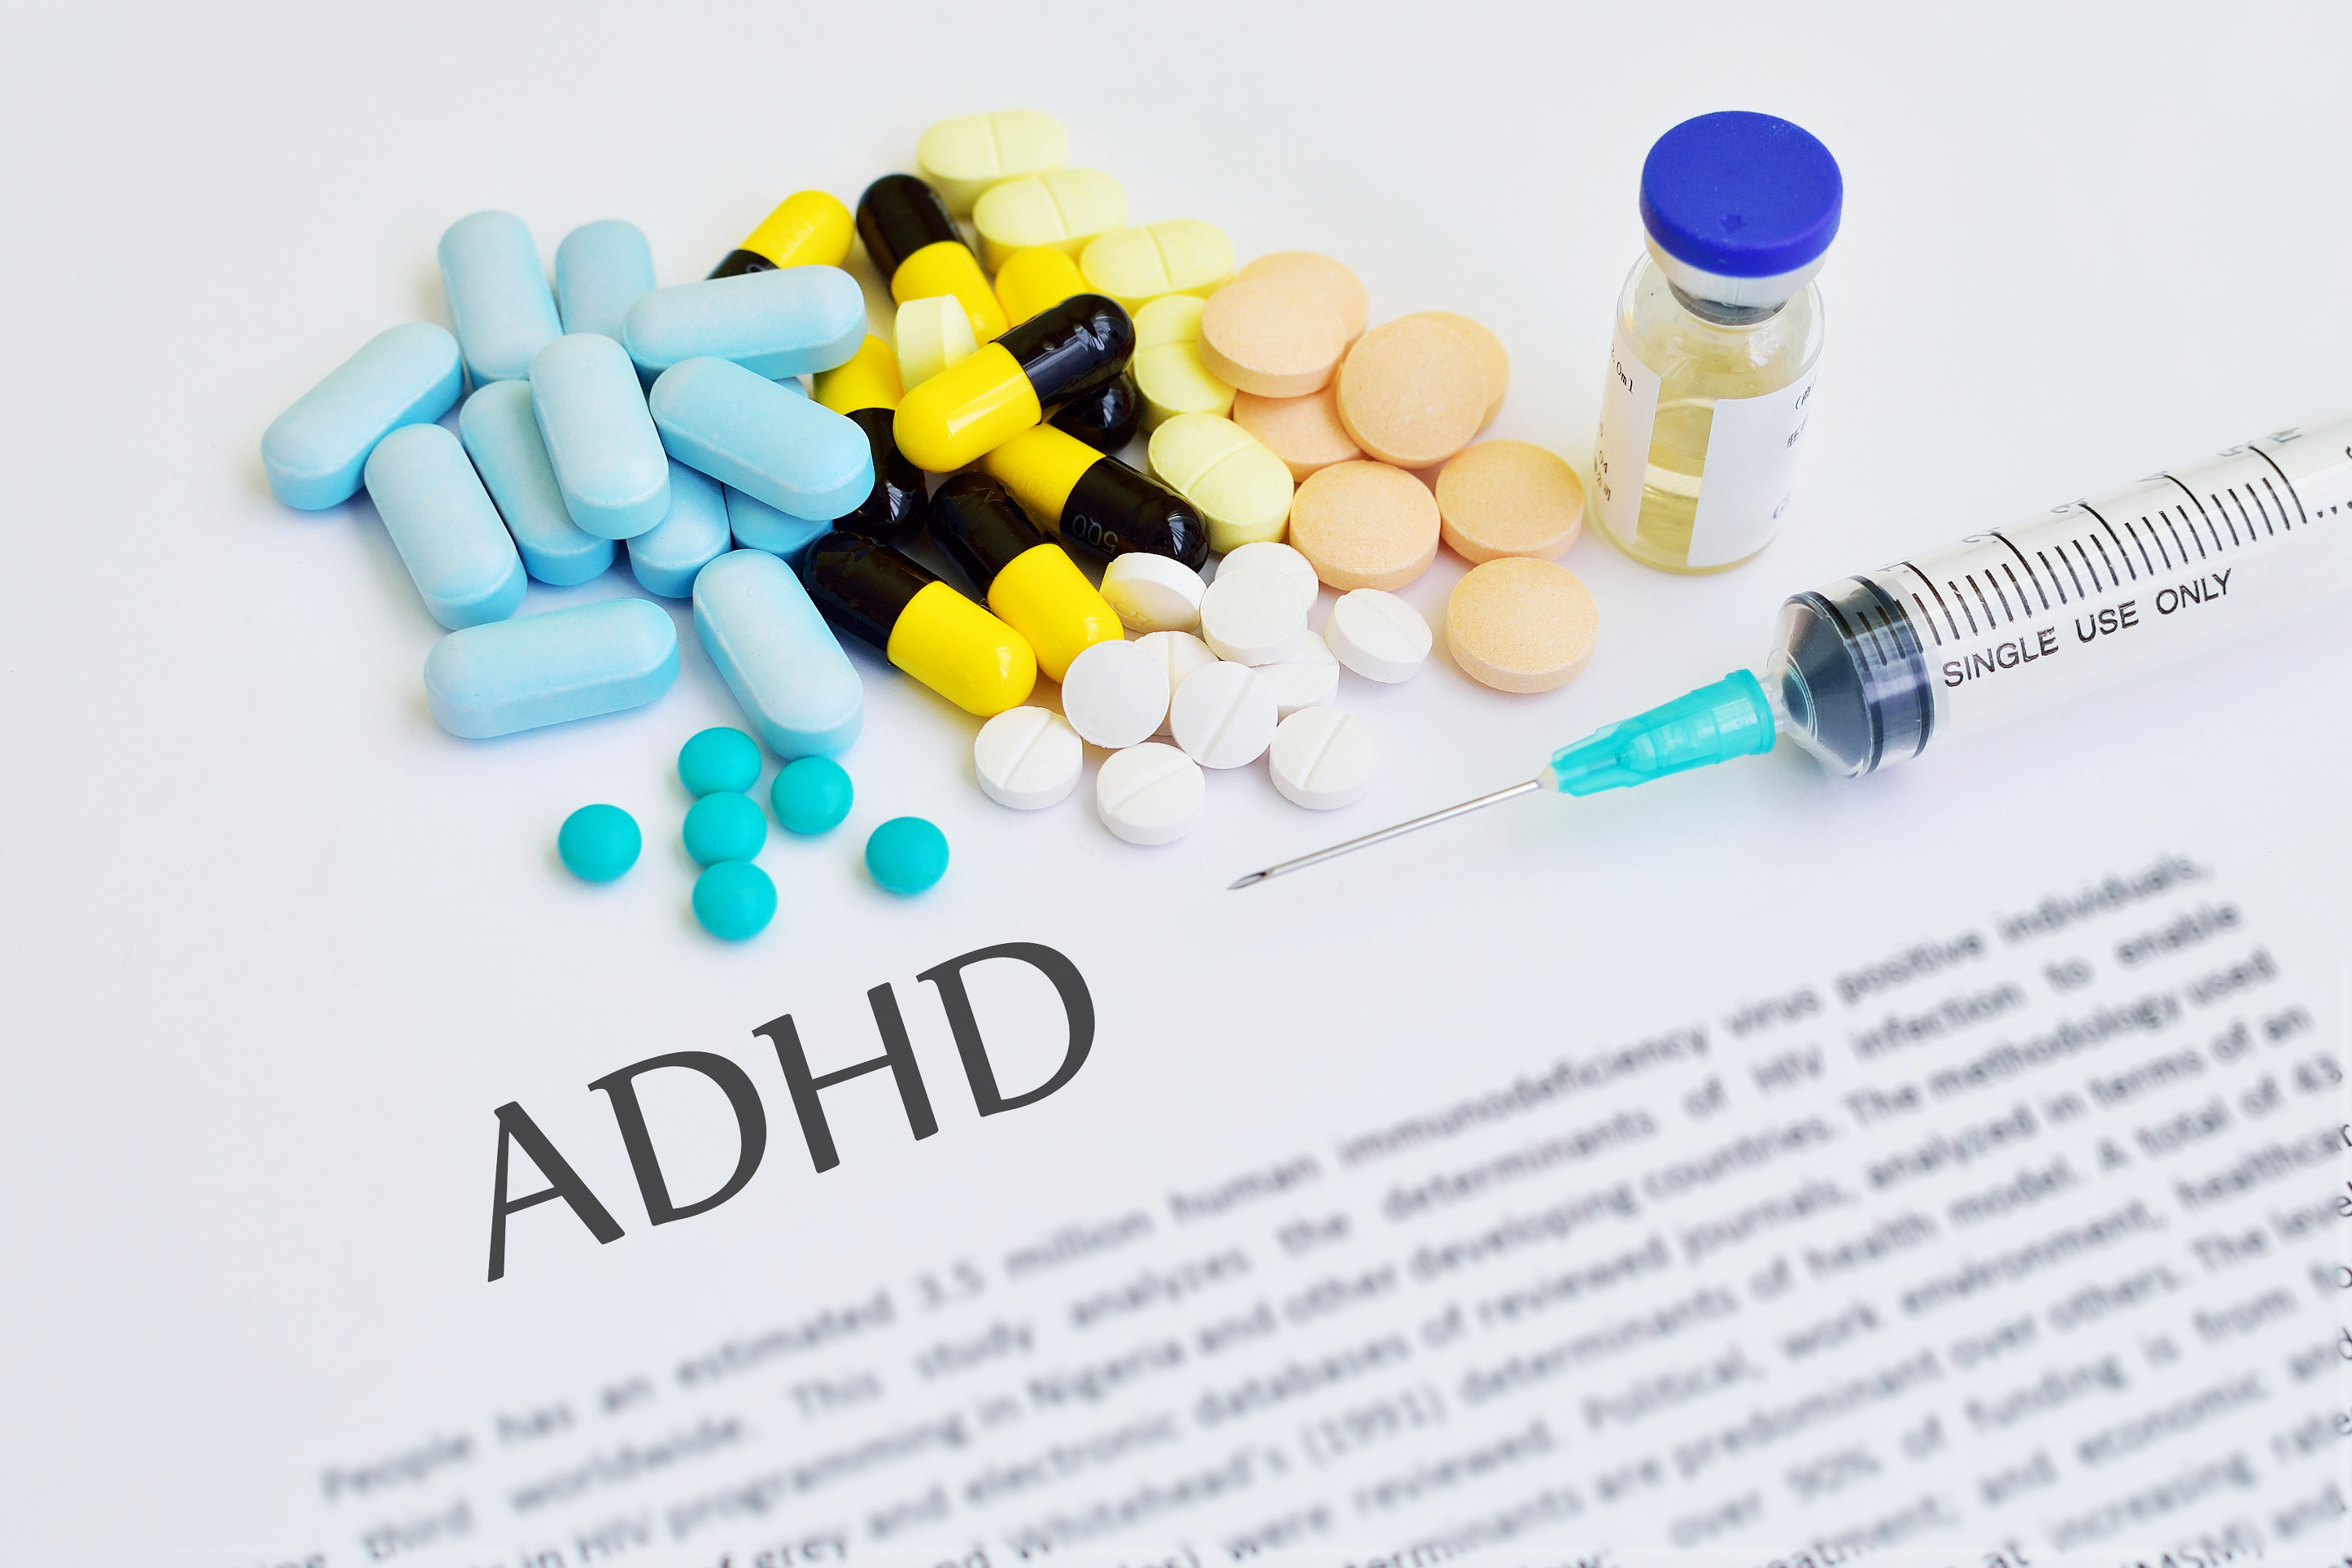 ADHD: Researchers suggest methylphenidate as first option for short-term treatment in children